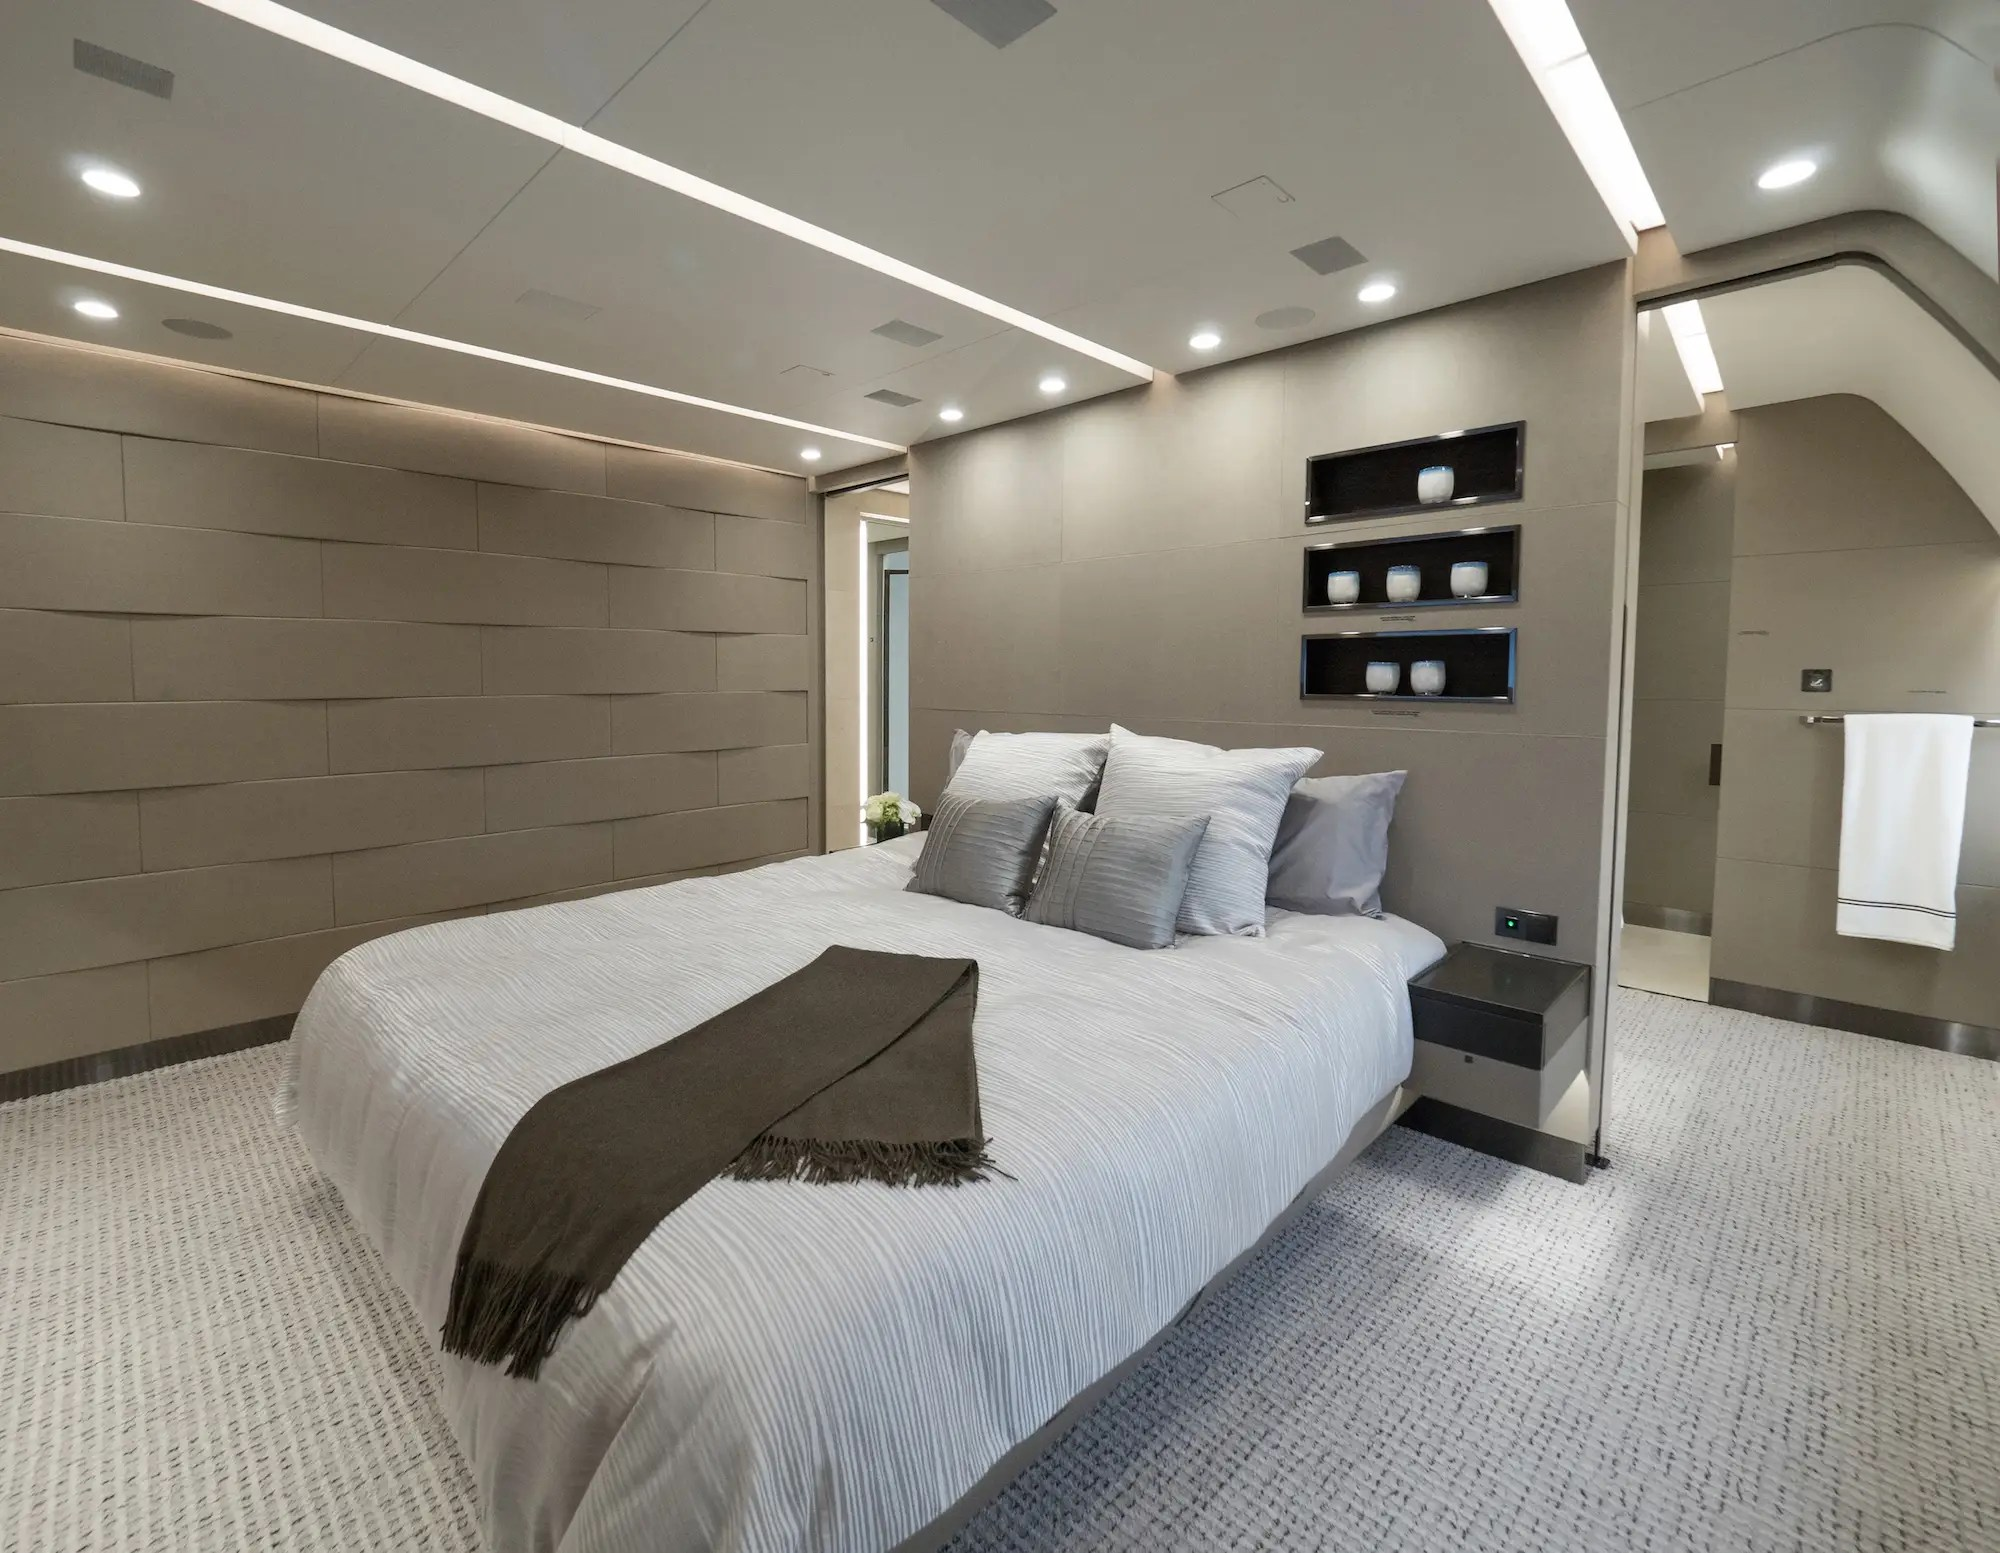 Enter the plane through its round foyer and you'll immediately encounter the doors to its massive master suite. The suite is divided in several sections and is designed to be totally independent from the rest of the plane.